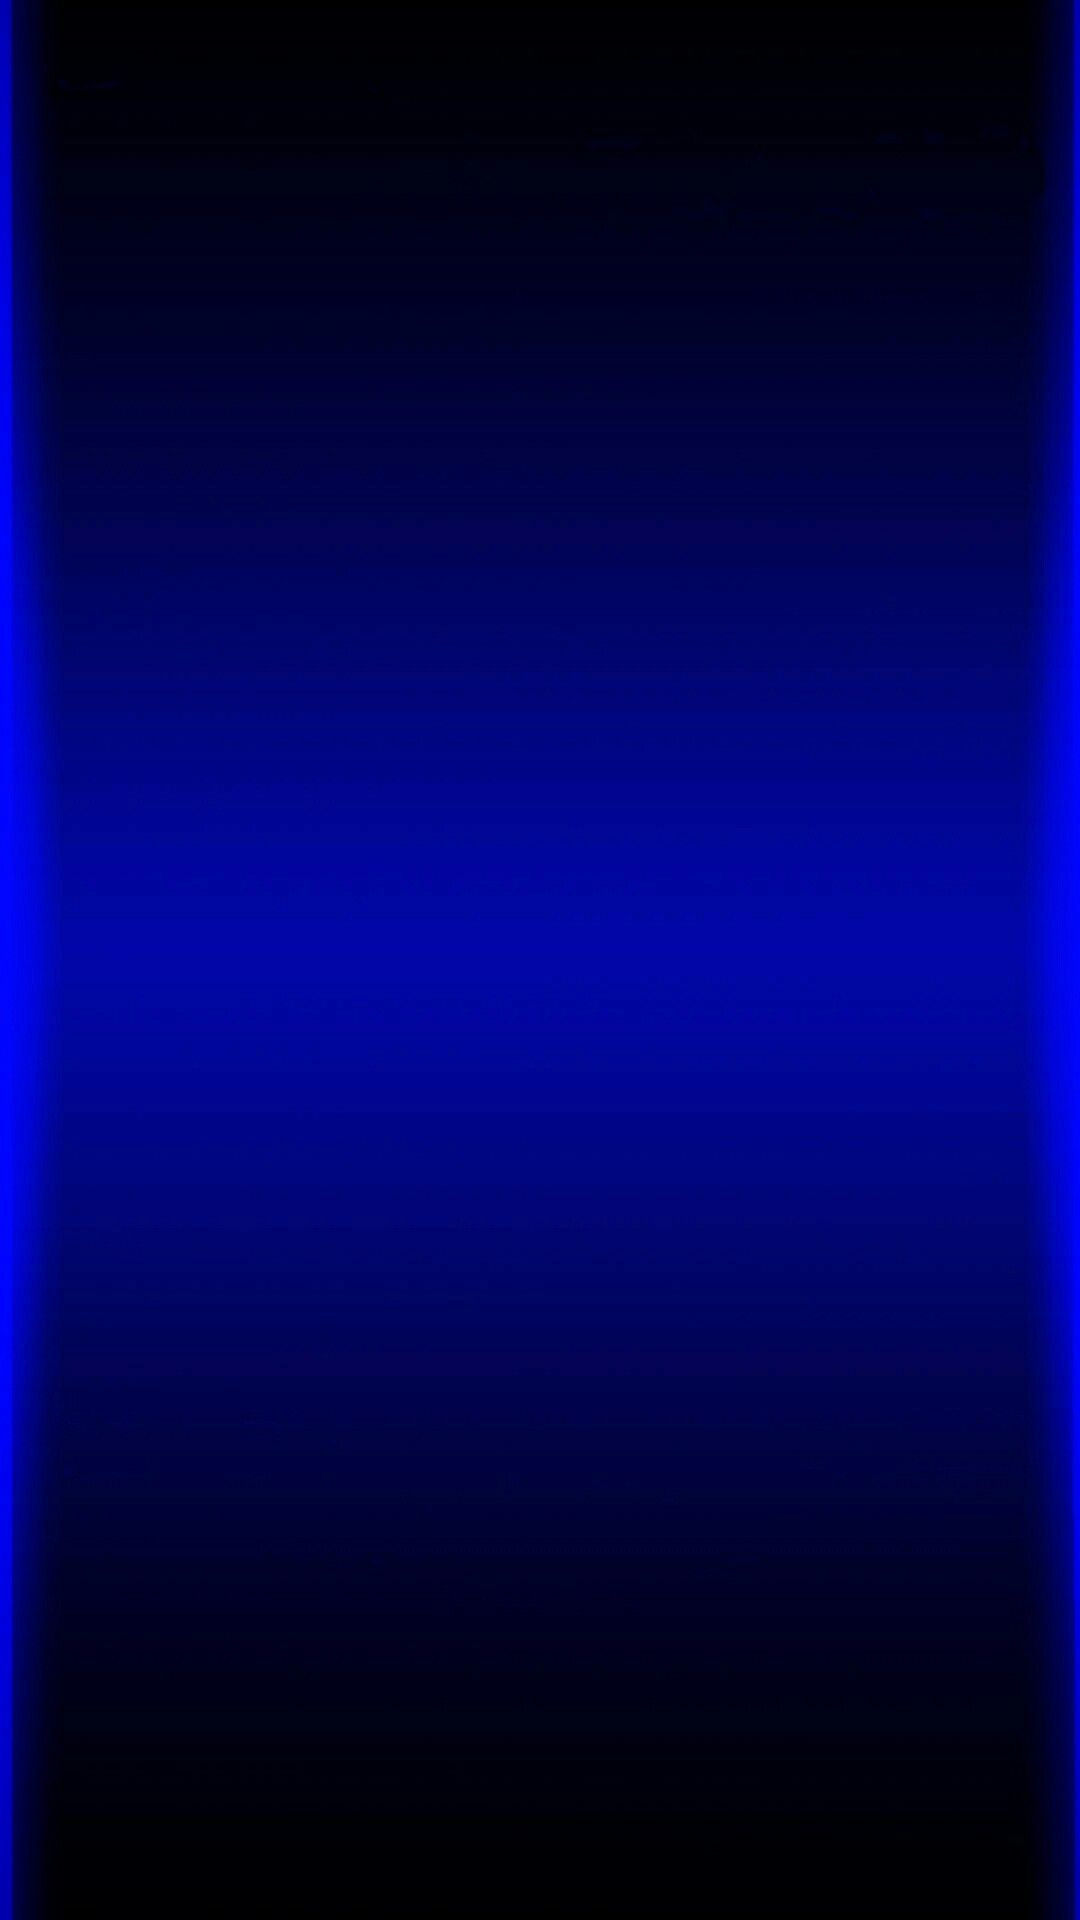 bright blue wallpaper  blue.quenalbertini: Bright Blue iPhone Wallpaper | Обои | Pinterest ...